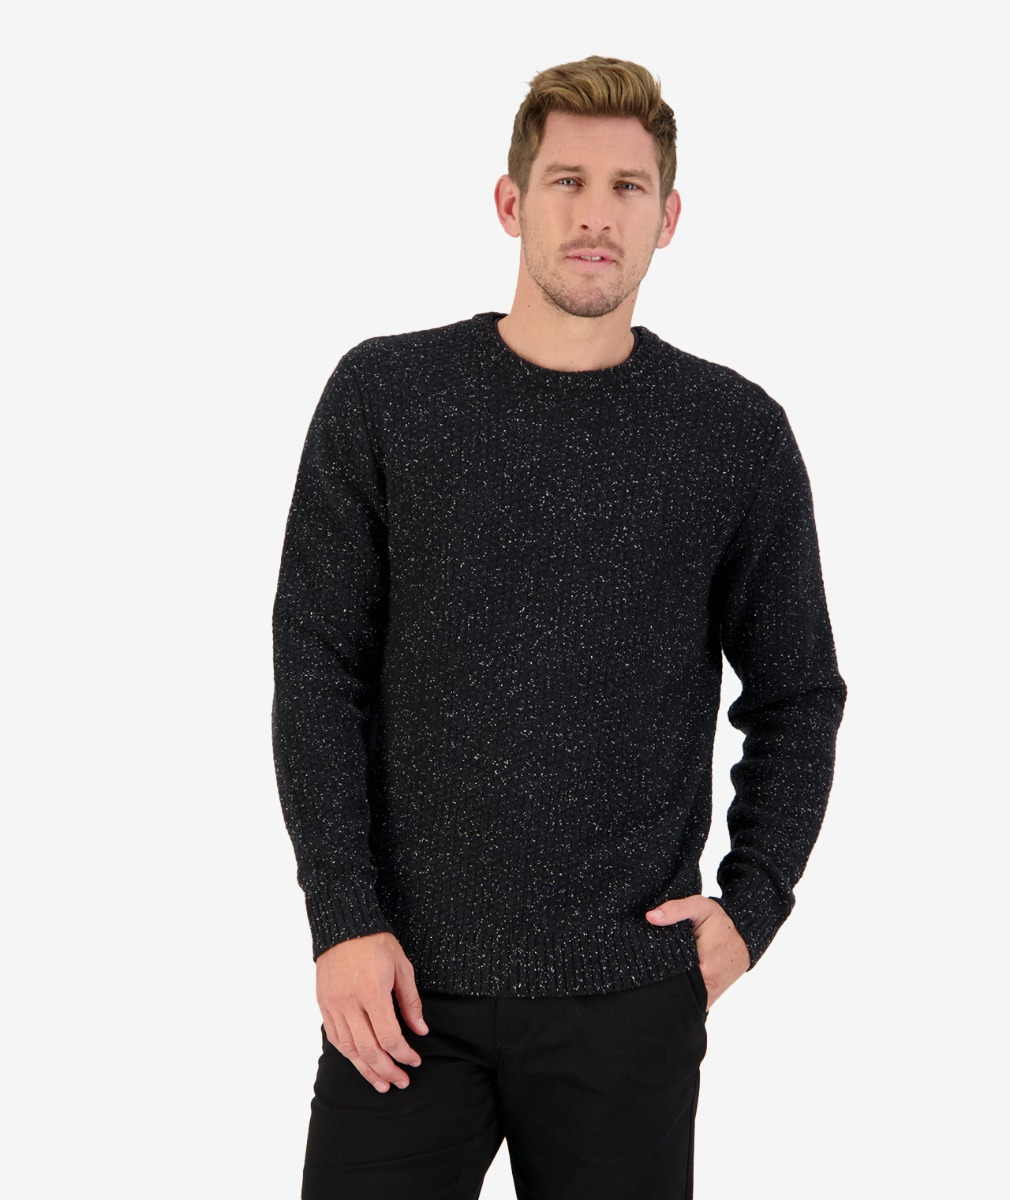 Sentry Hill Knit Crew in Black